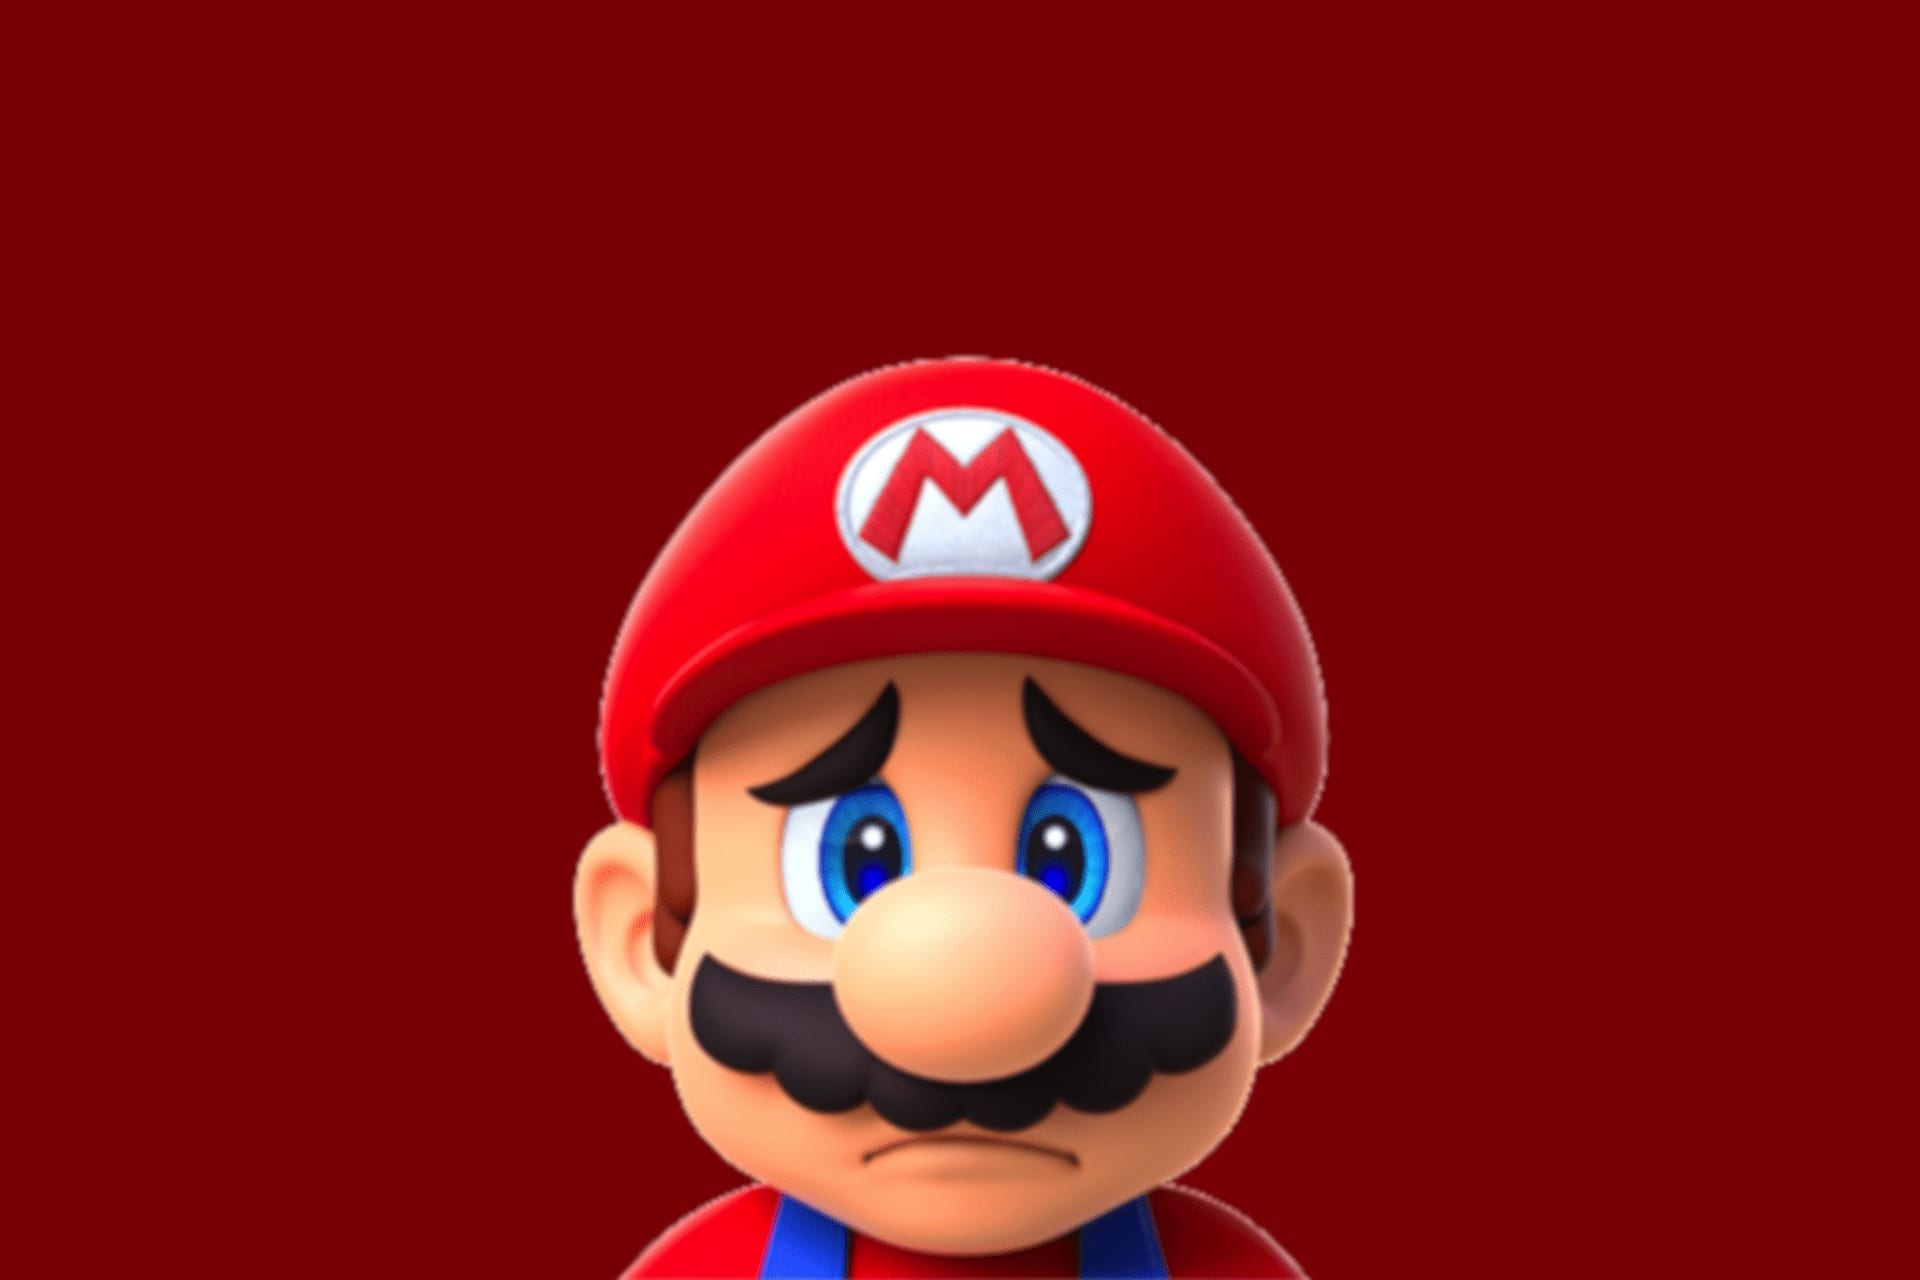 March 31st Is 'The Day Mario Dies,' According To Upset Nintendo Fans